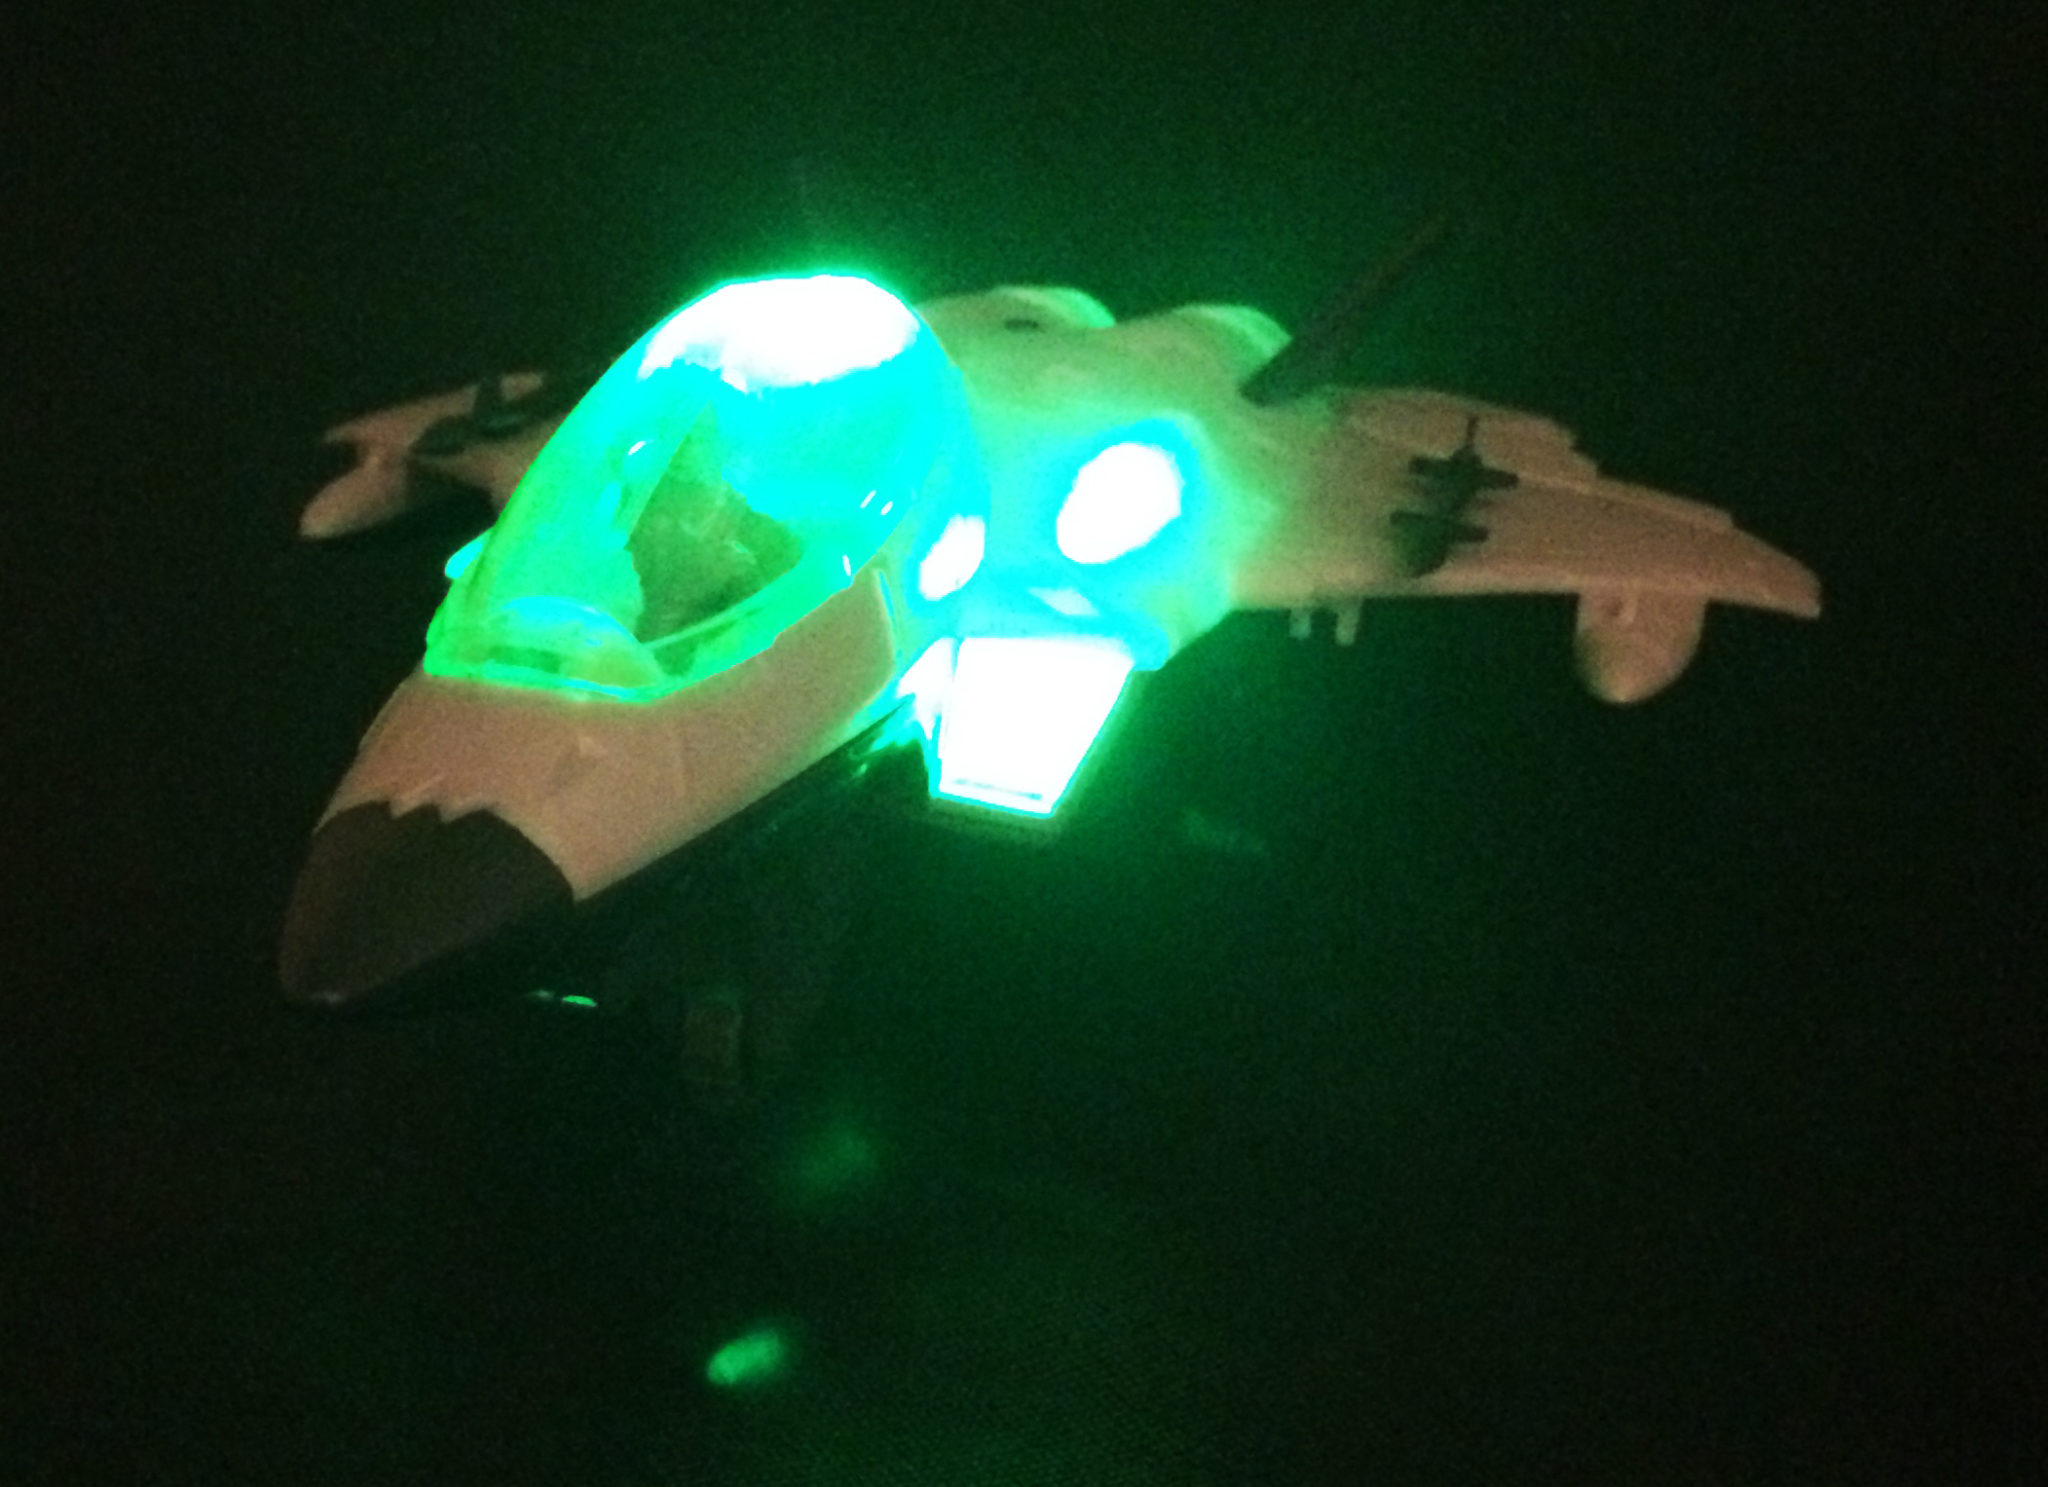 Fighter Jet Toy Side Lit Up